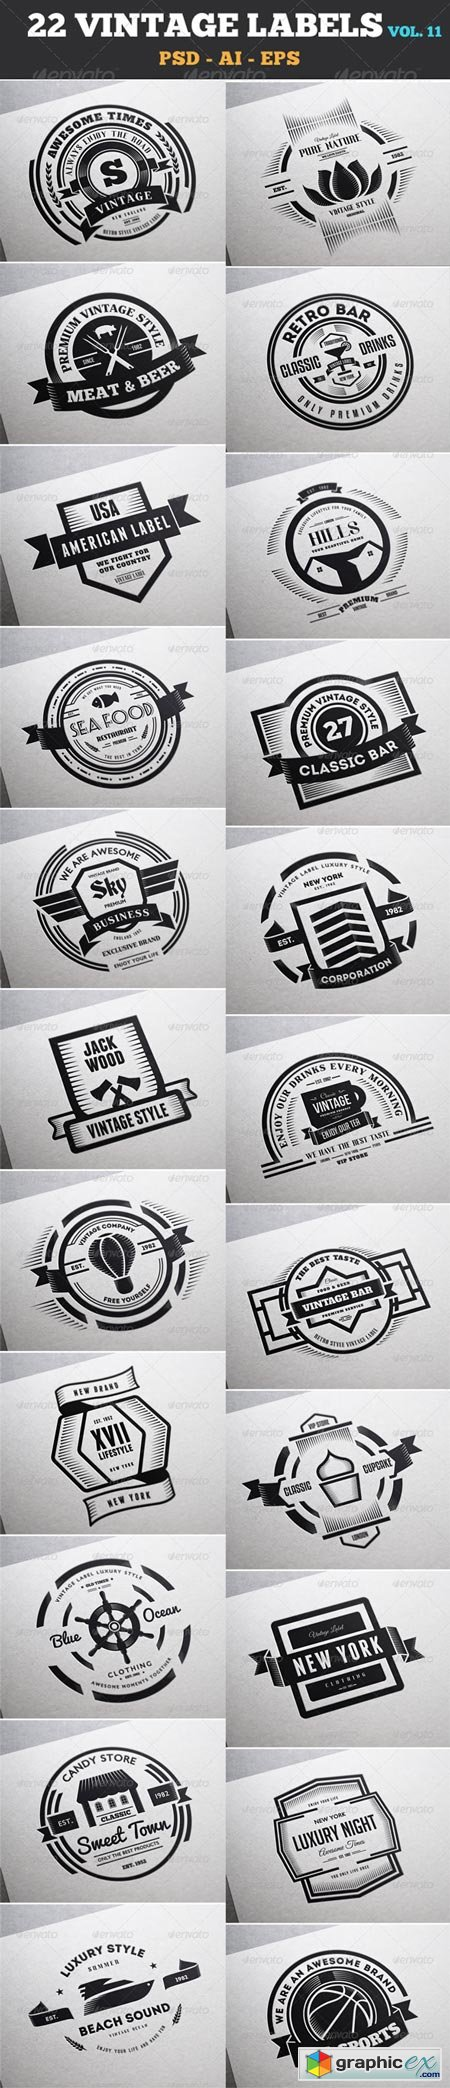 22 Vintage Labels & Badges Logos Insignias V11 7533985